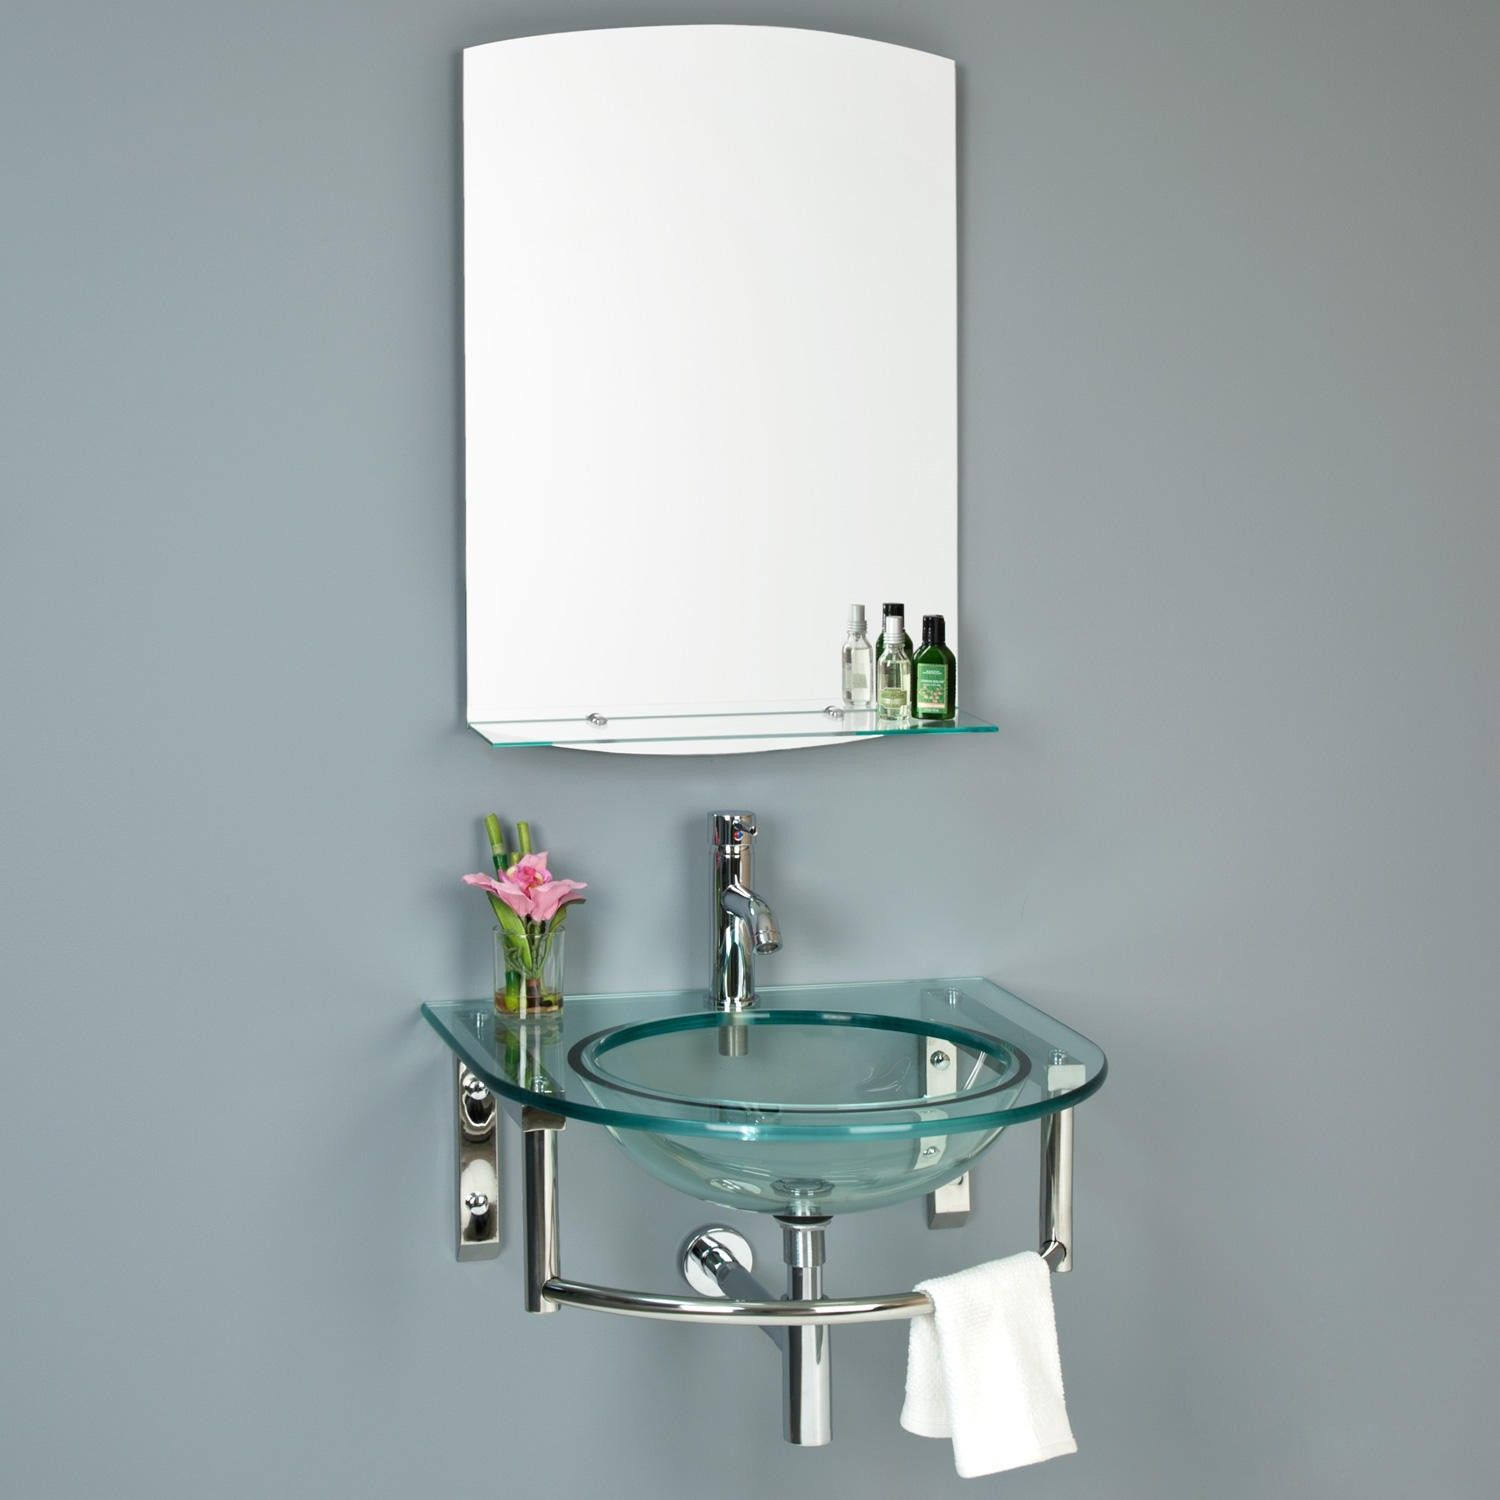 Glass Sink Bathroom Lowry Wall Mount Glass Sink With Mirror And Shelf Shelves Glass